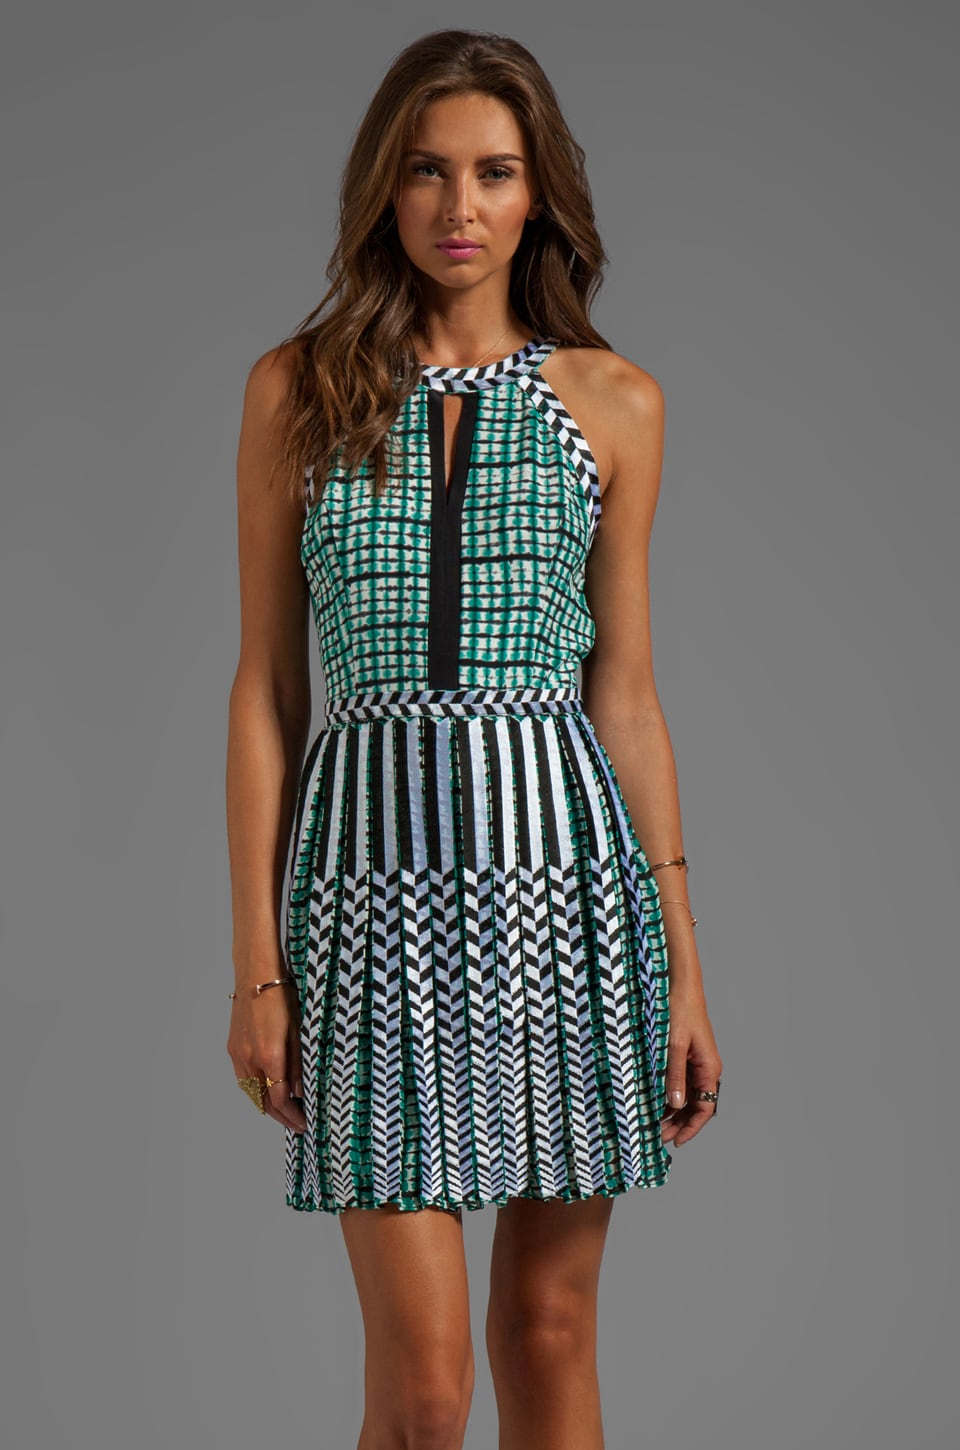 Parker Selita Dress in Plaid Tye